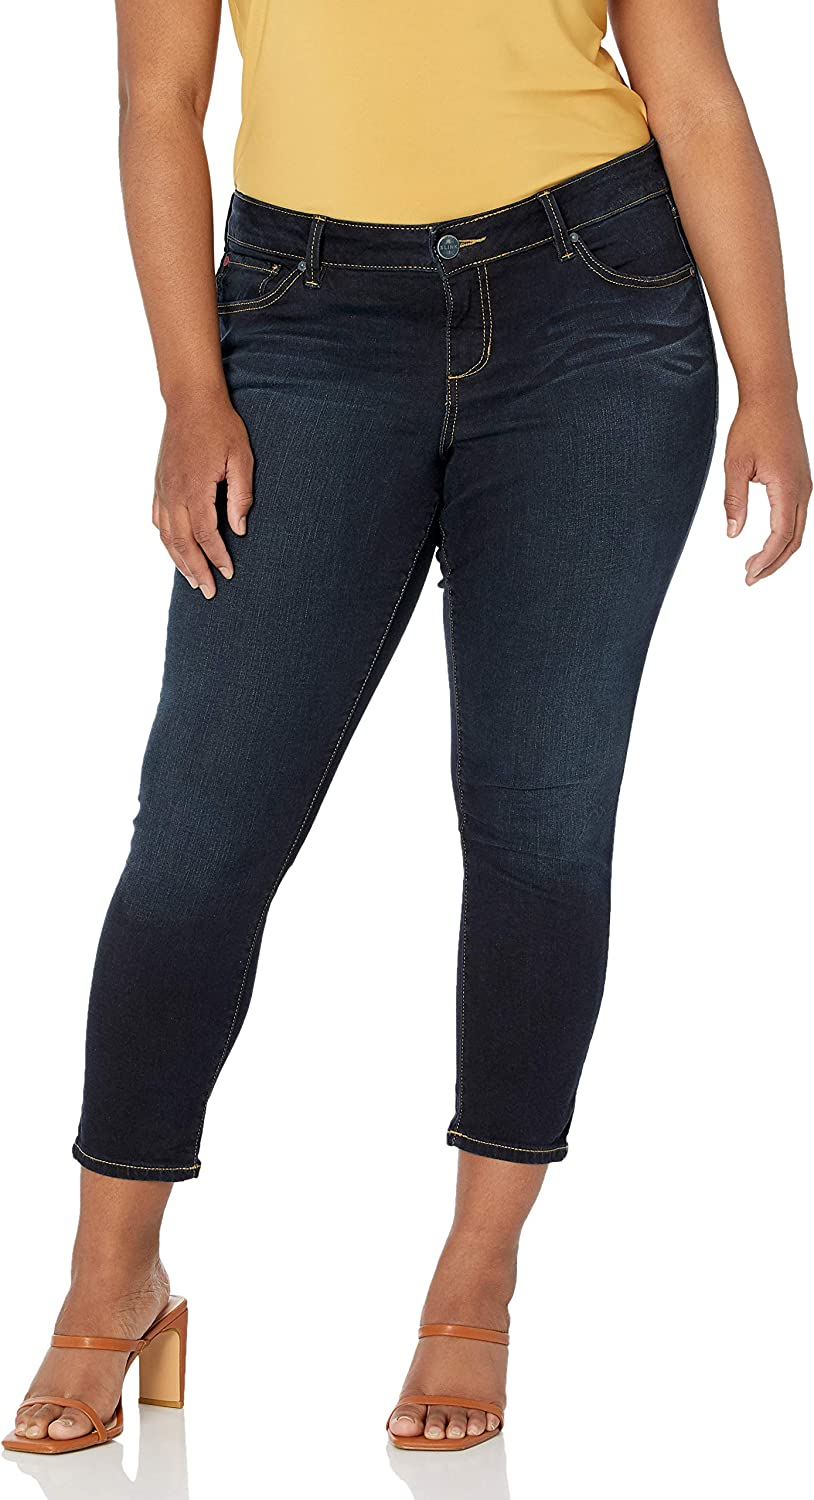 SLINK Jeans Women's Plus Ranking TOP2 Skinny Ankle Dealing full price reduction Size Summer